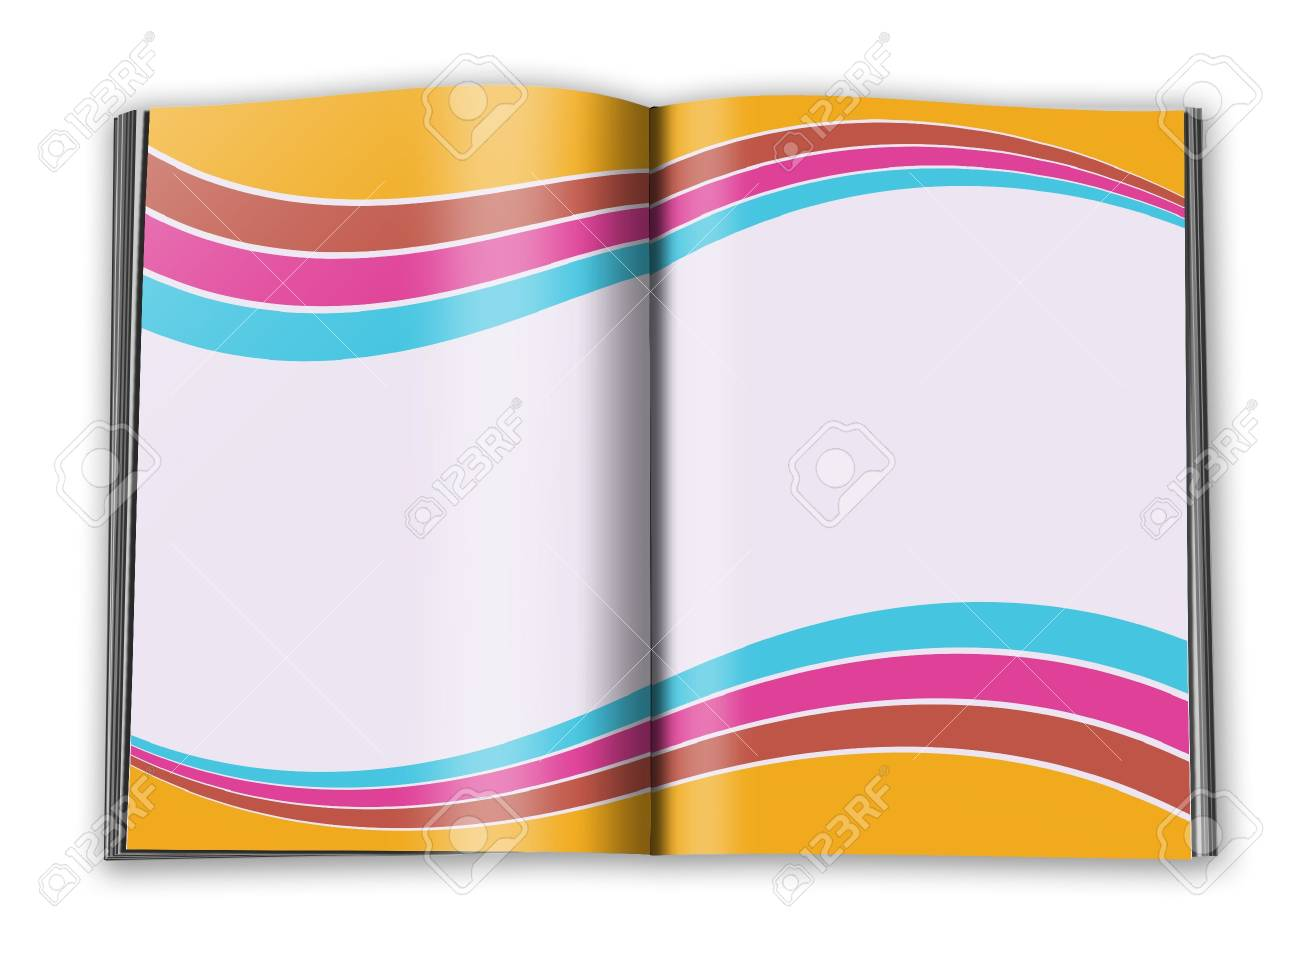 open book with empty designed pages with a paper Stock Photo - 6302938